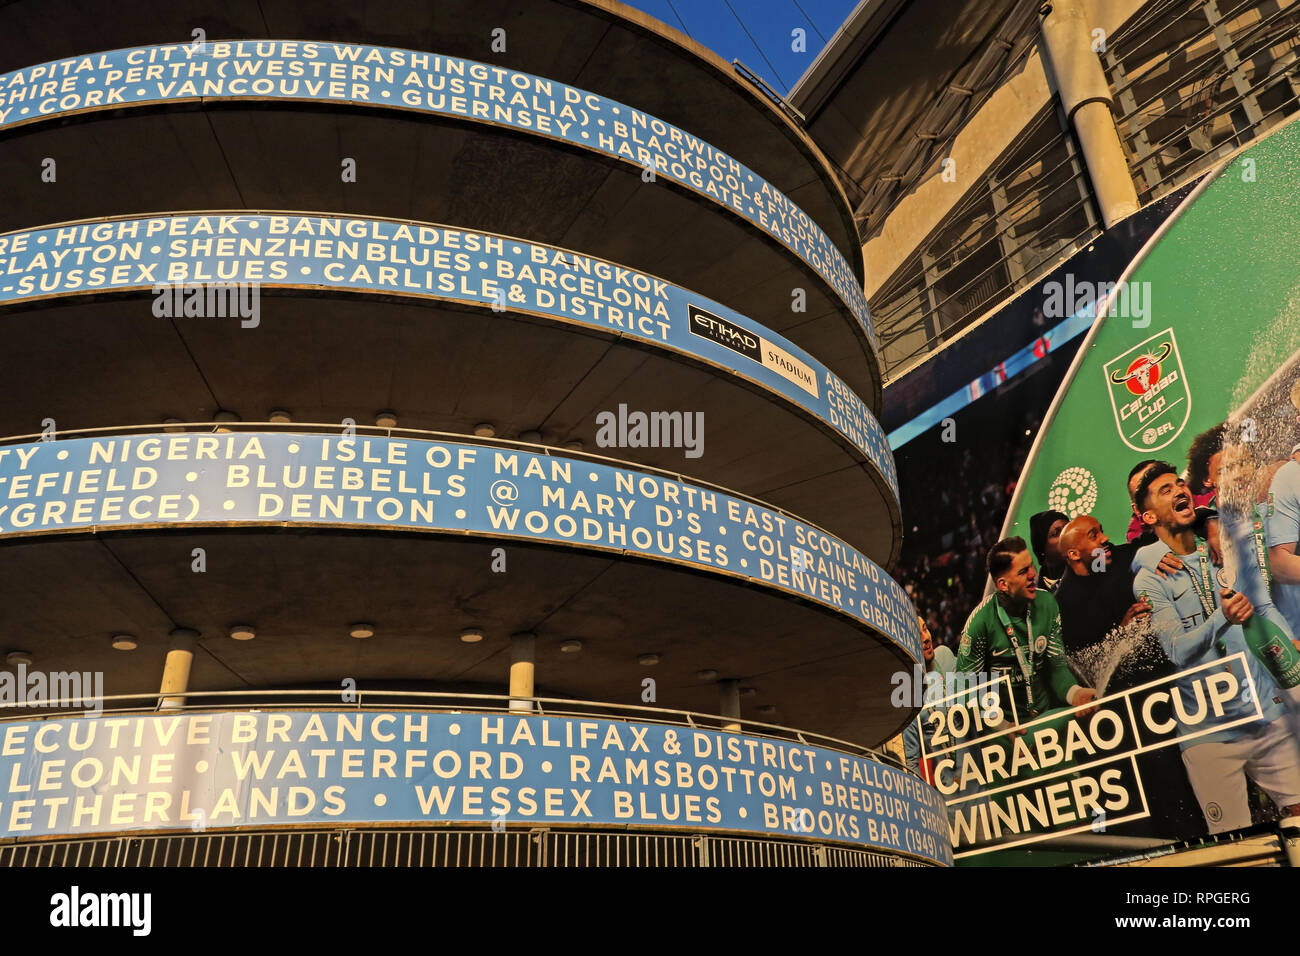 MCFC Etihad Manchester City FC Supporters club locations, stadium, England, UK - Stock Image